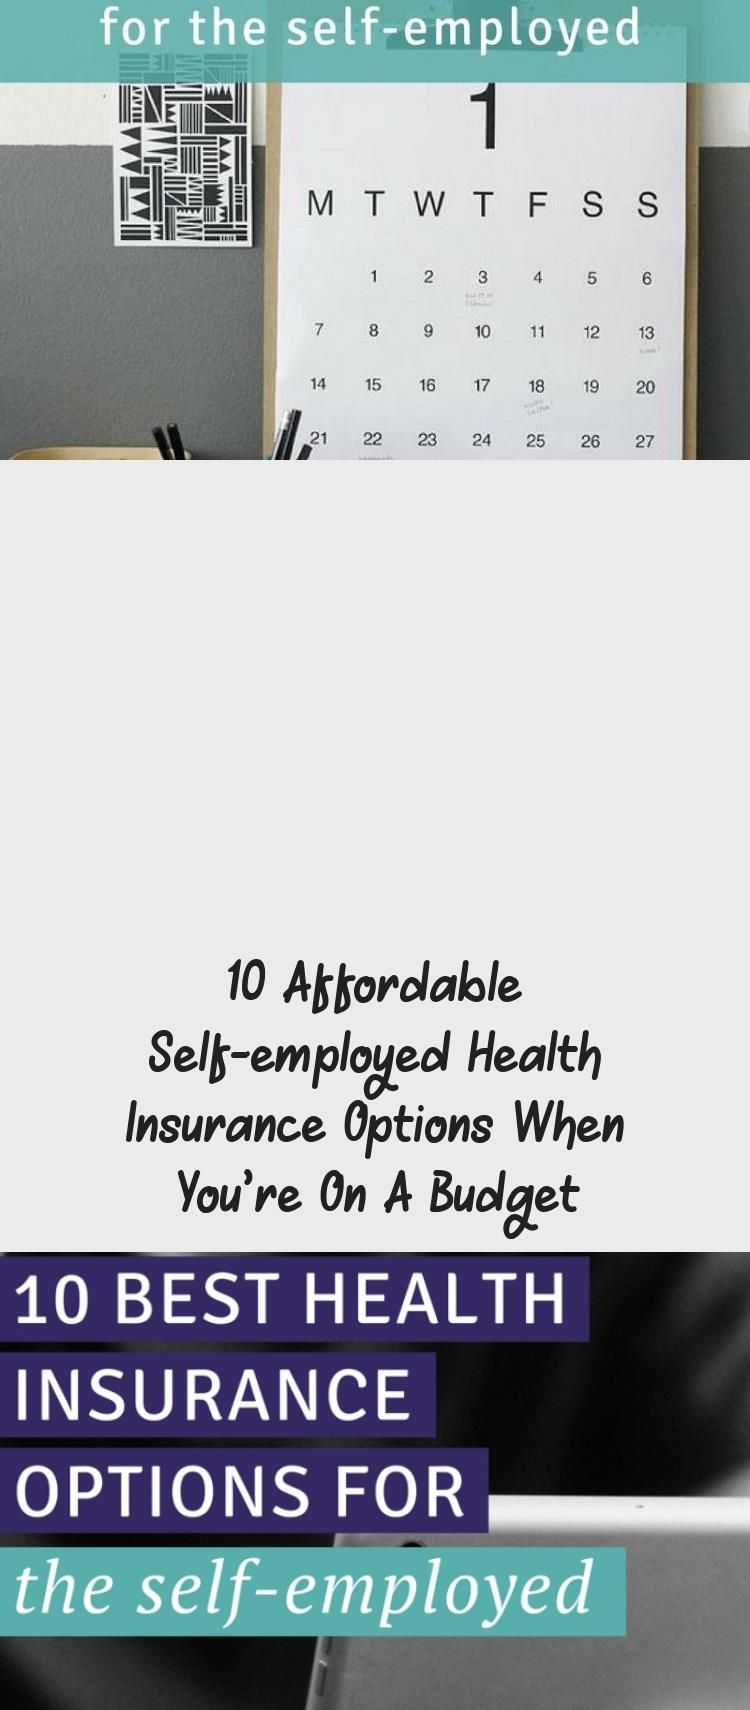 So You Re Trying To Buy Health Insurance When Self Employed But Don T Want To Break The Bank Here Are In 2020 Business Insurance Best Health Insurance Insurance Humor